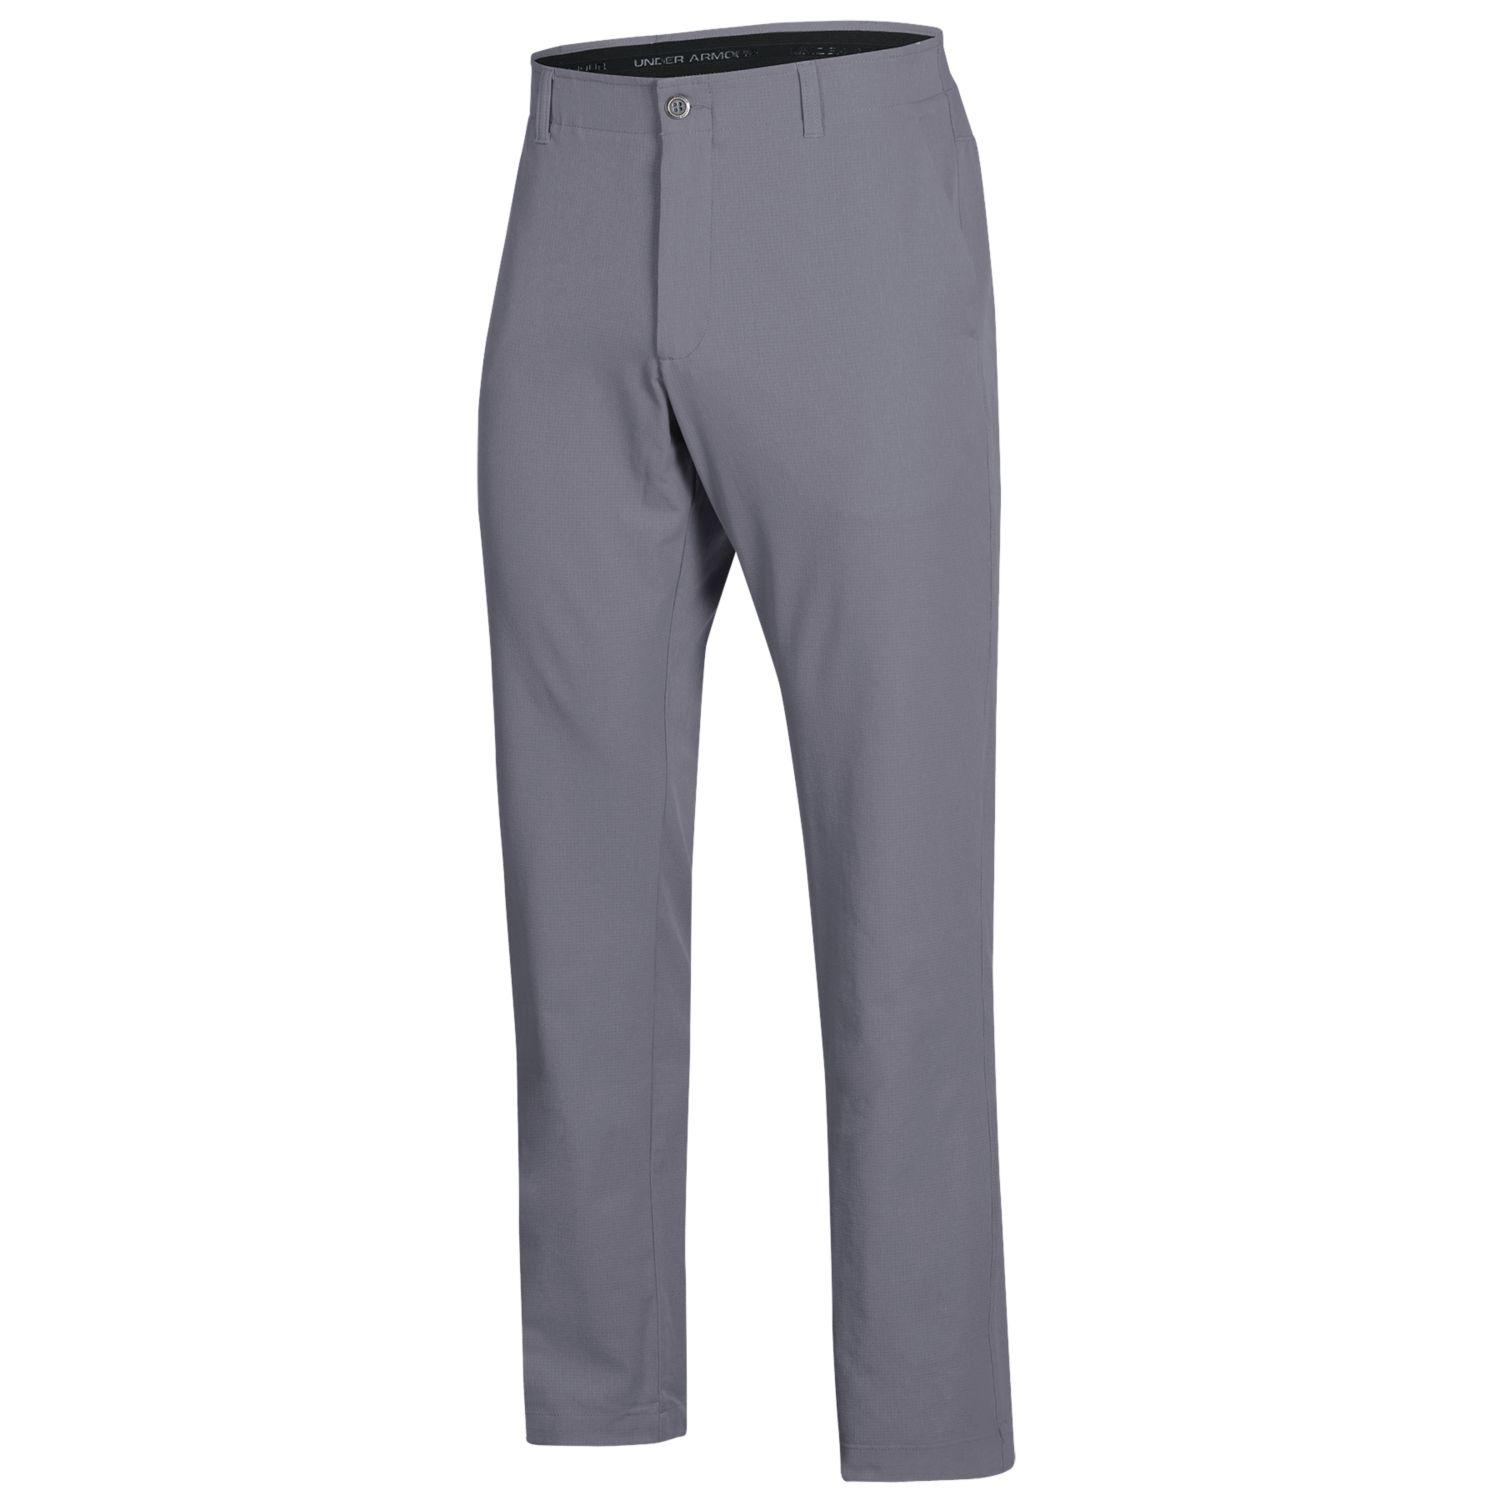 Under Armour Men's 2019 Show Down Vented Zinc Pant